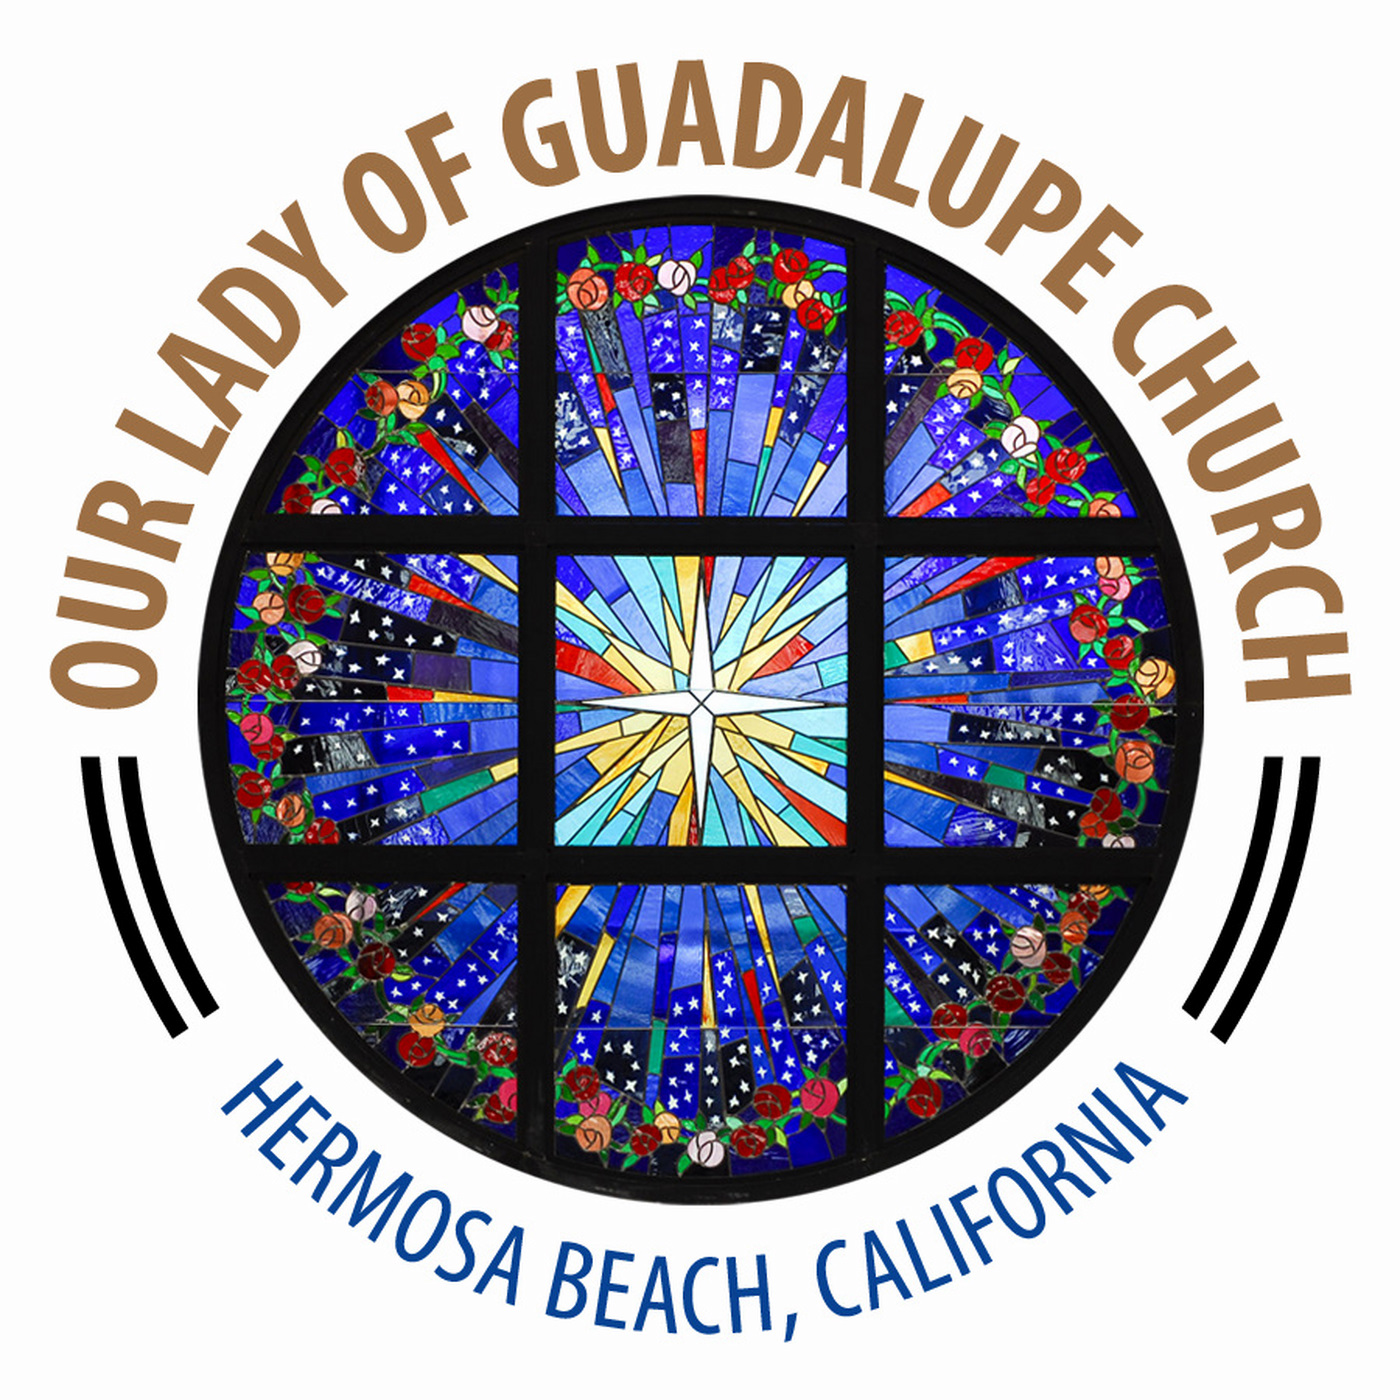 Our Lady of Guadalupe Catholic Church: Catholic Sunday Homilies